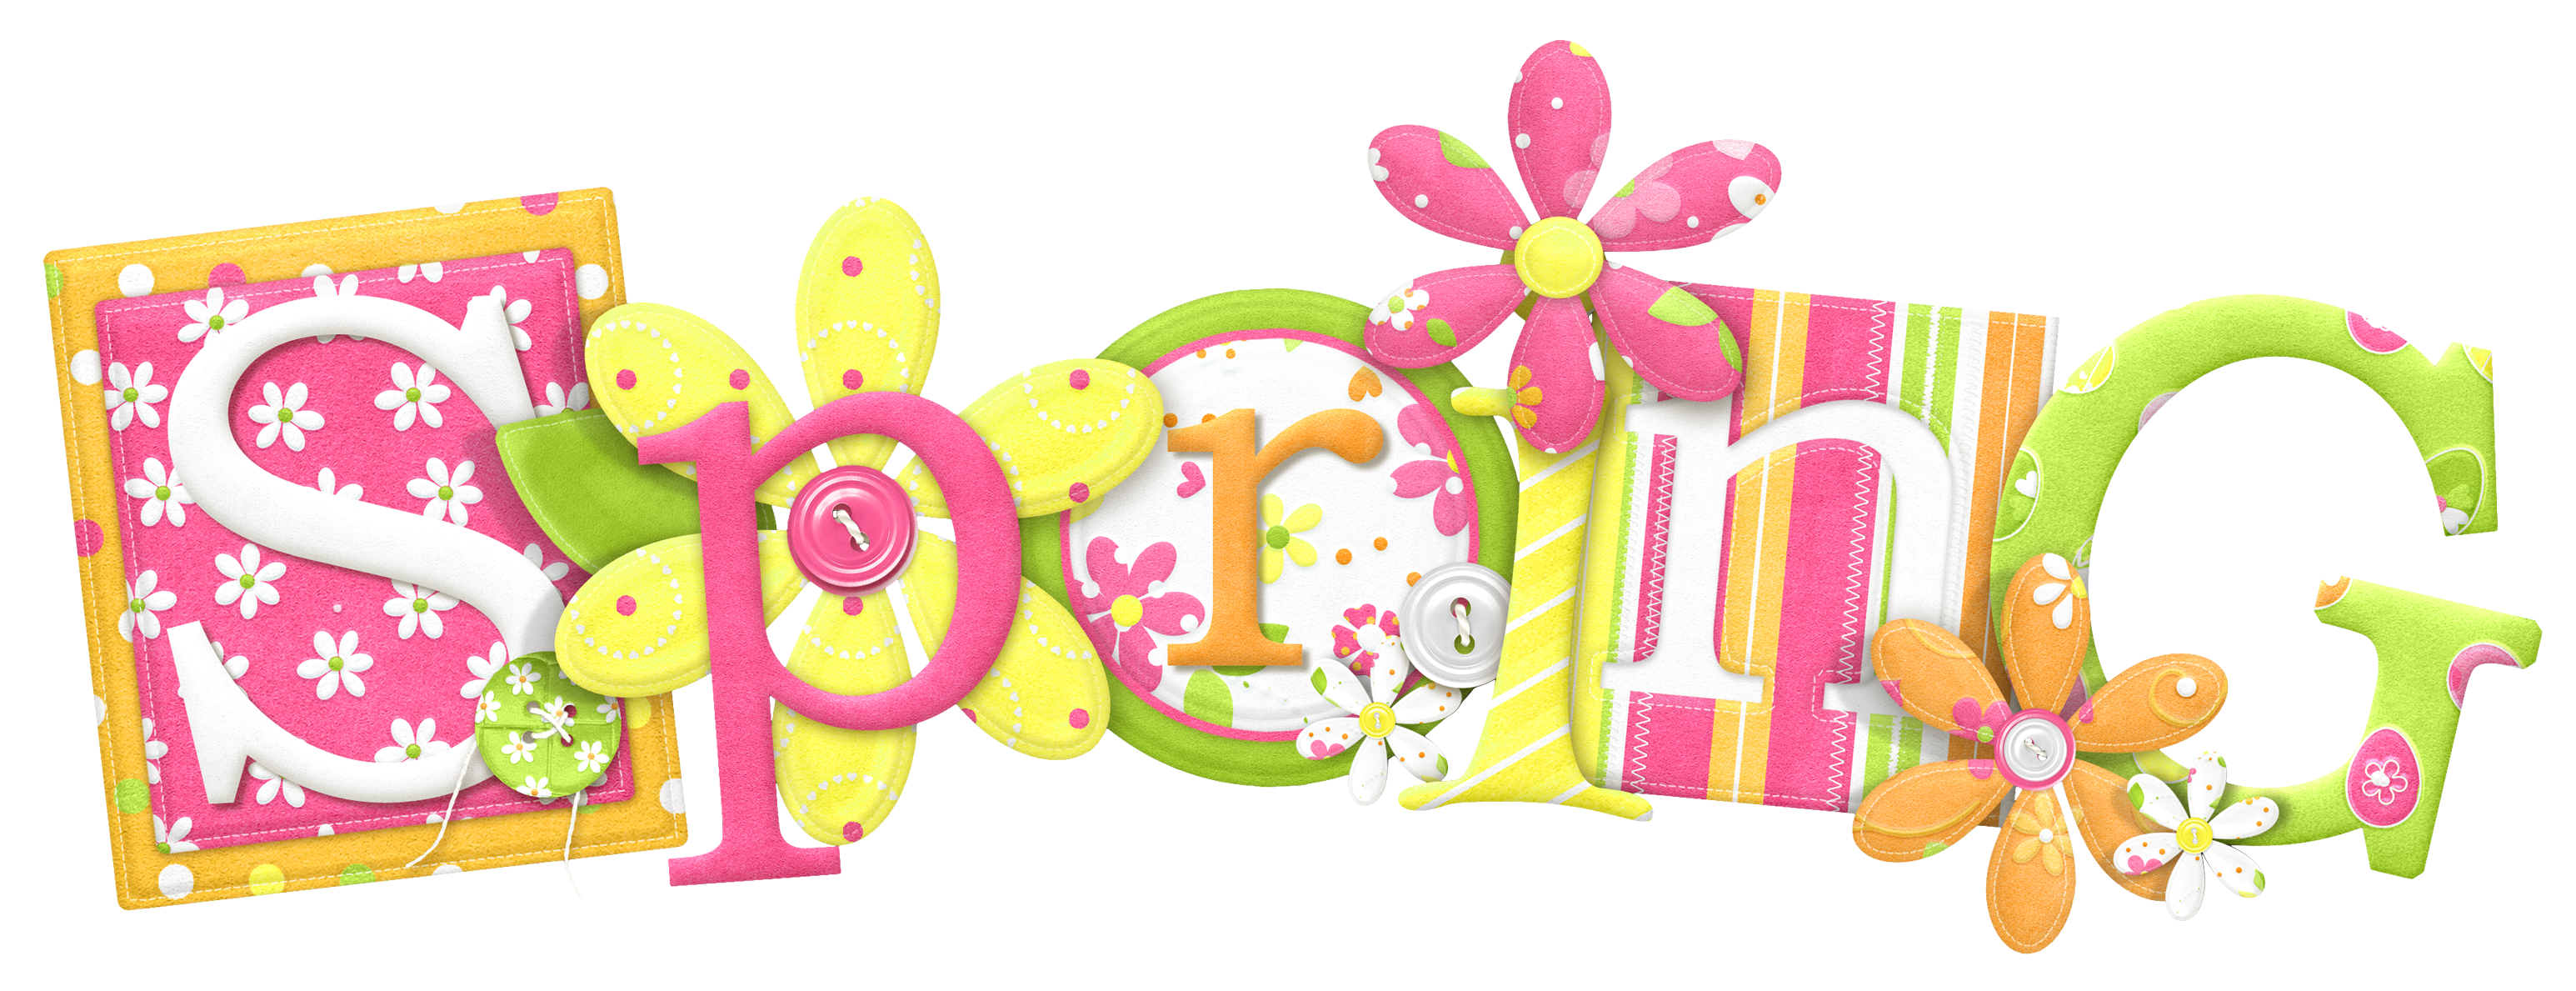 Spring art png. Clipart picture gallery yopriceville